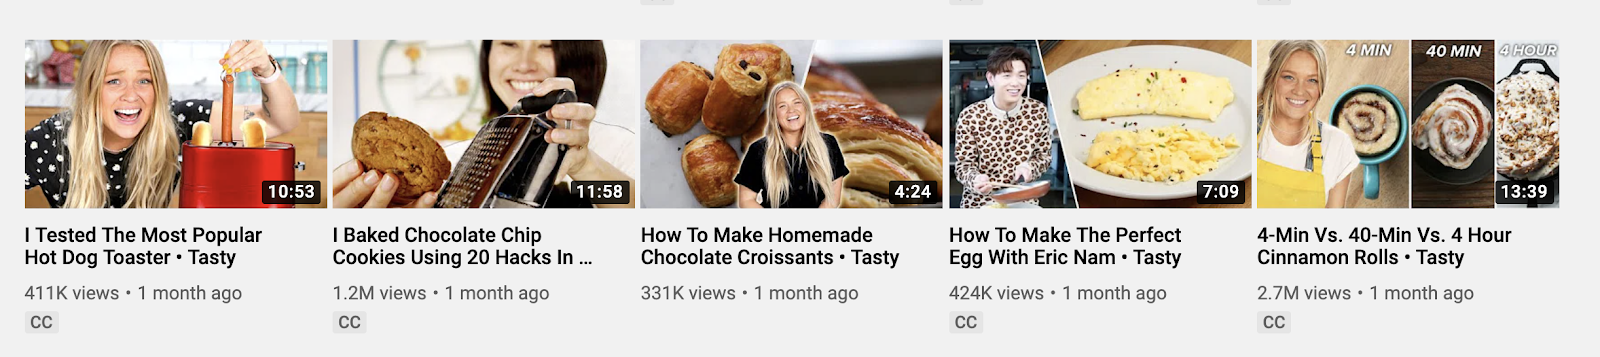 Example of video thumbnails